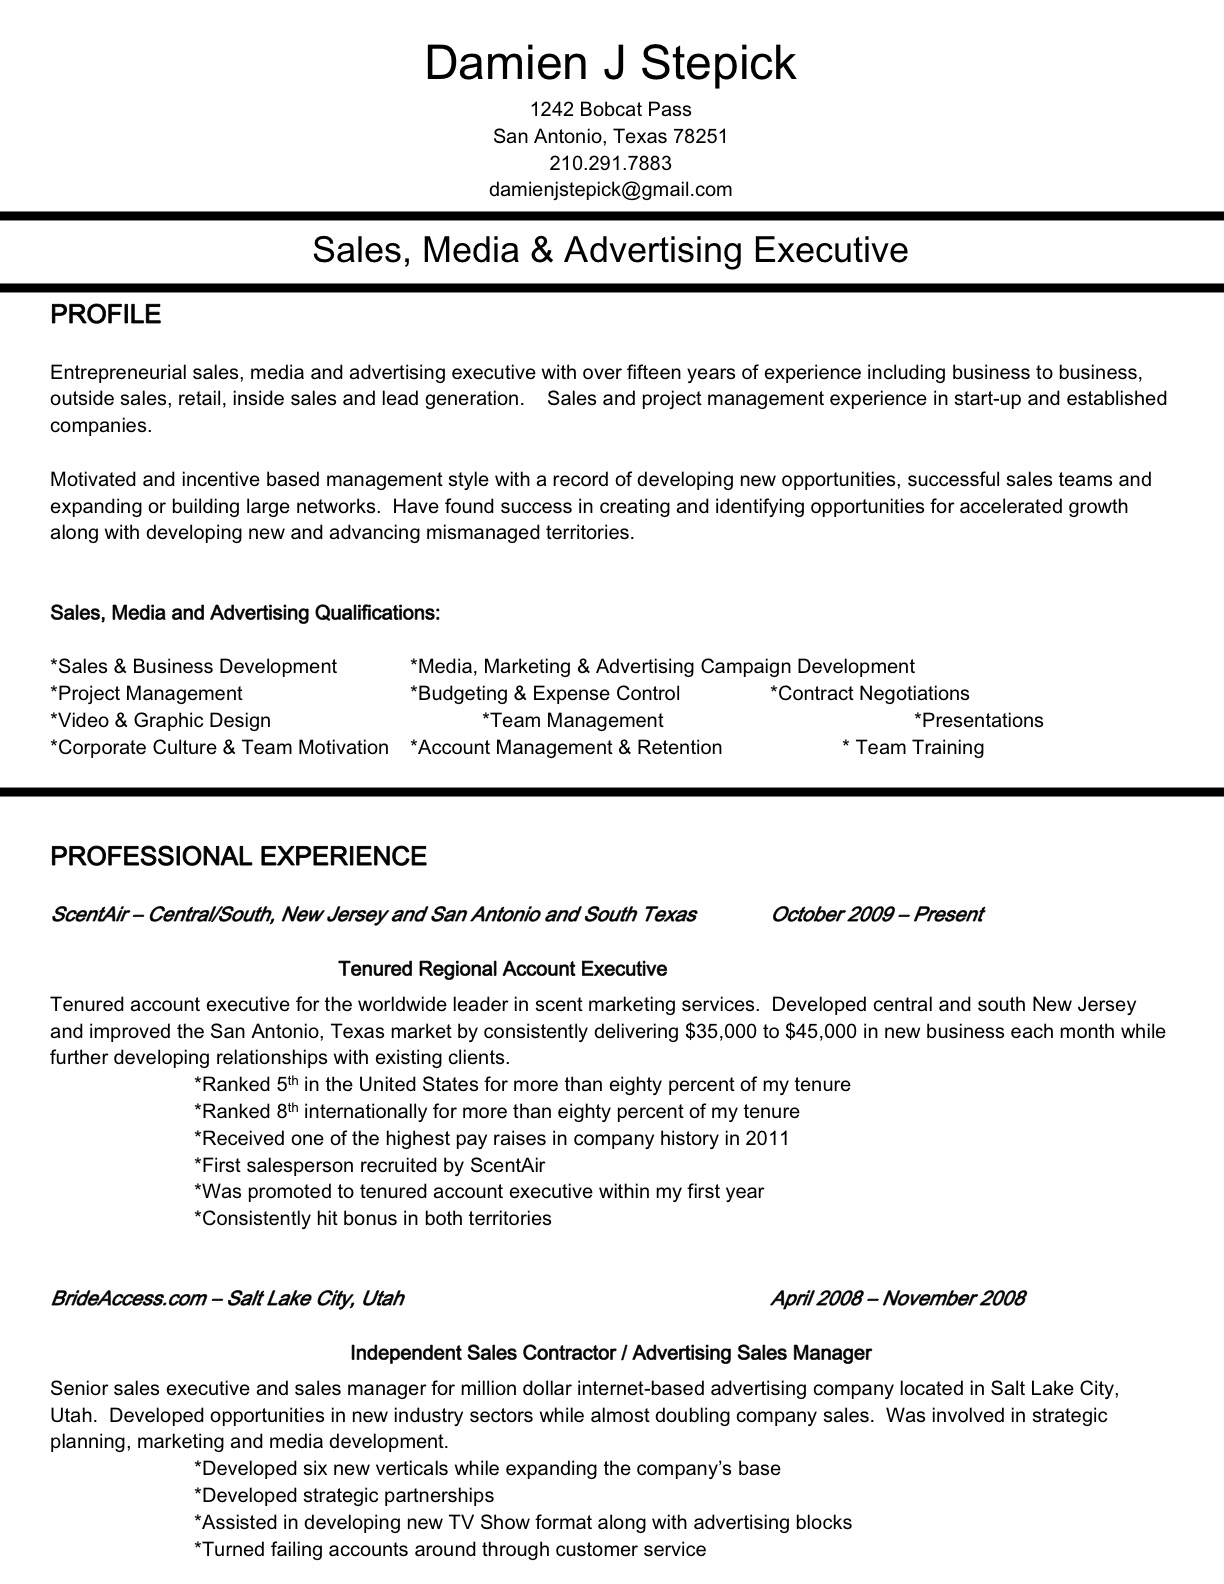 hopes dreams and hiccups physical therapist resume template 25052017 massage therapist resume template